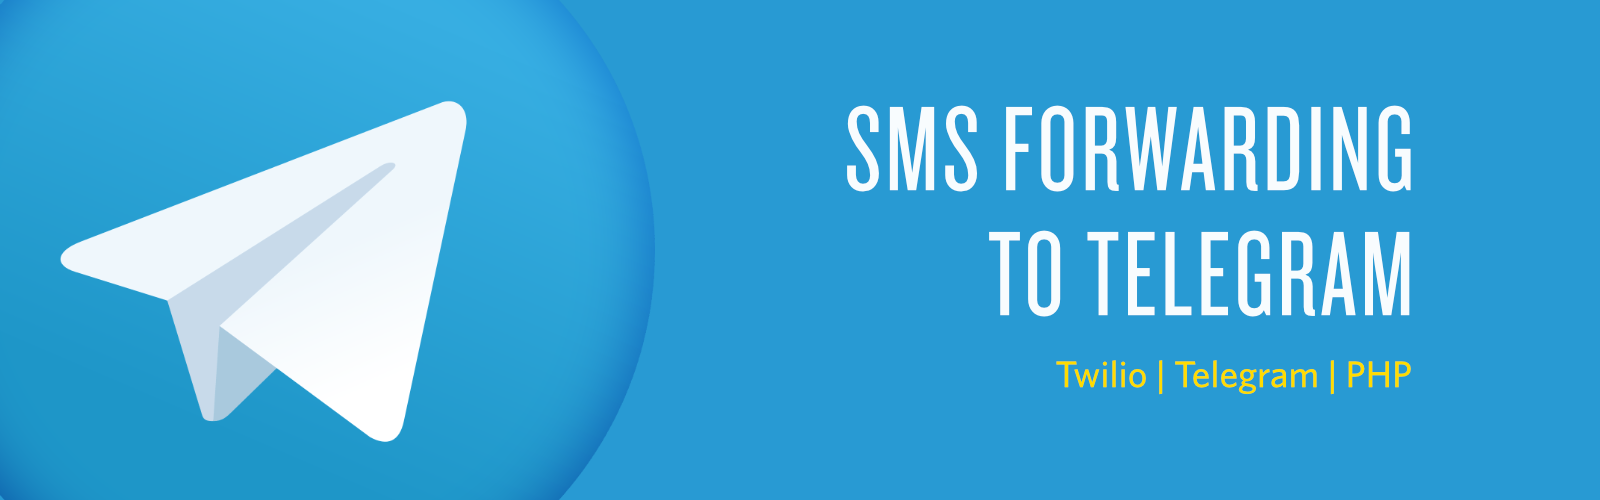 How to Forward SMS to Your Telegram Account in PHP - Twilio